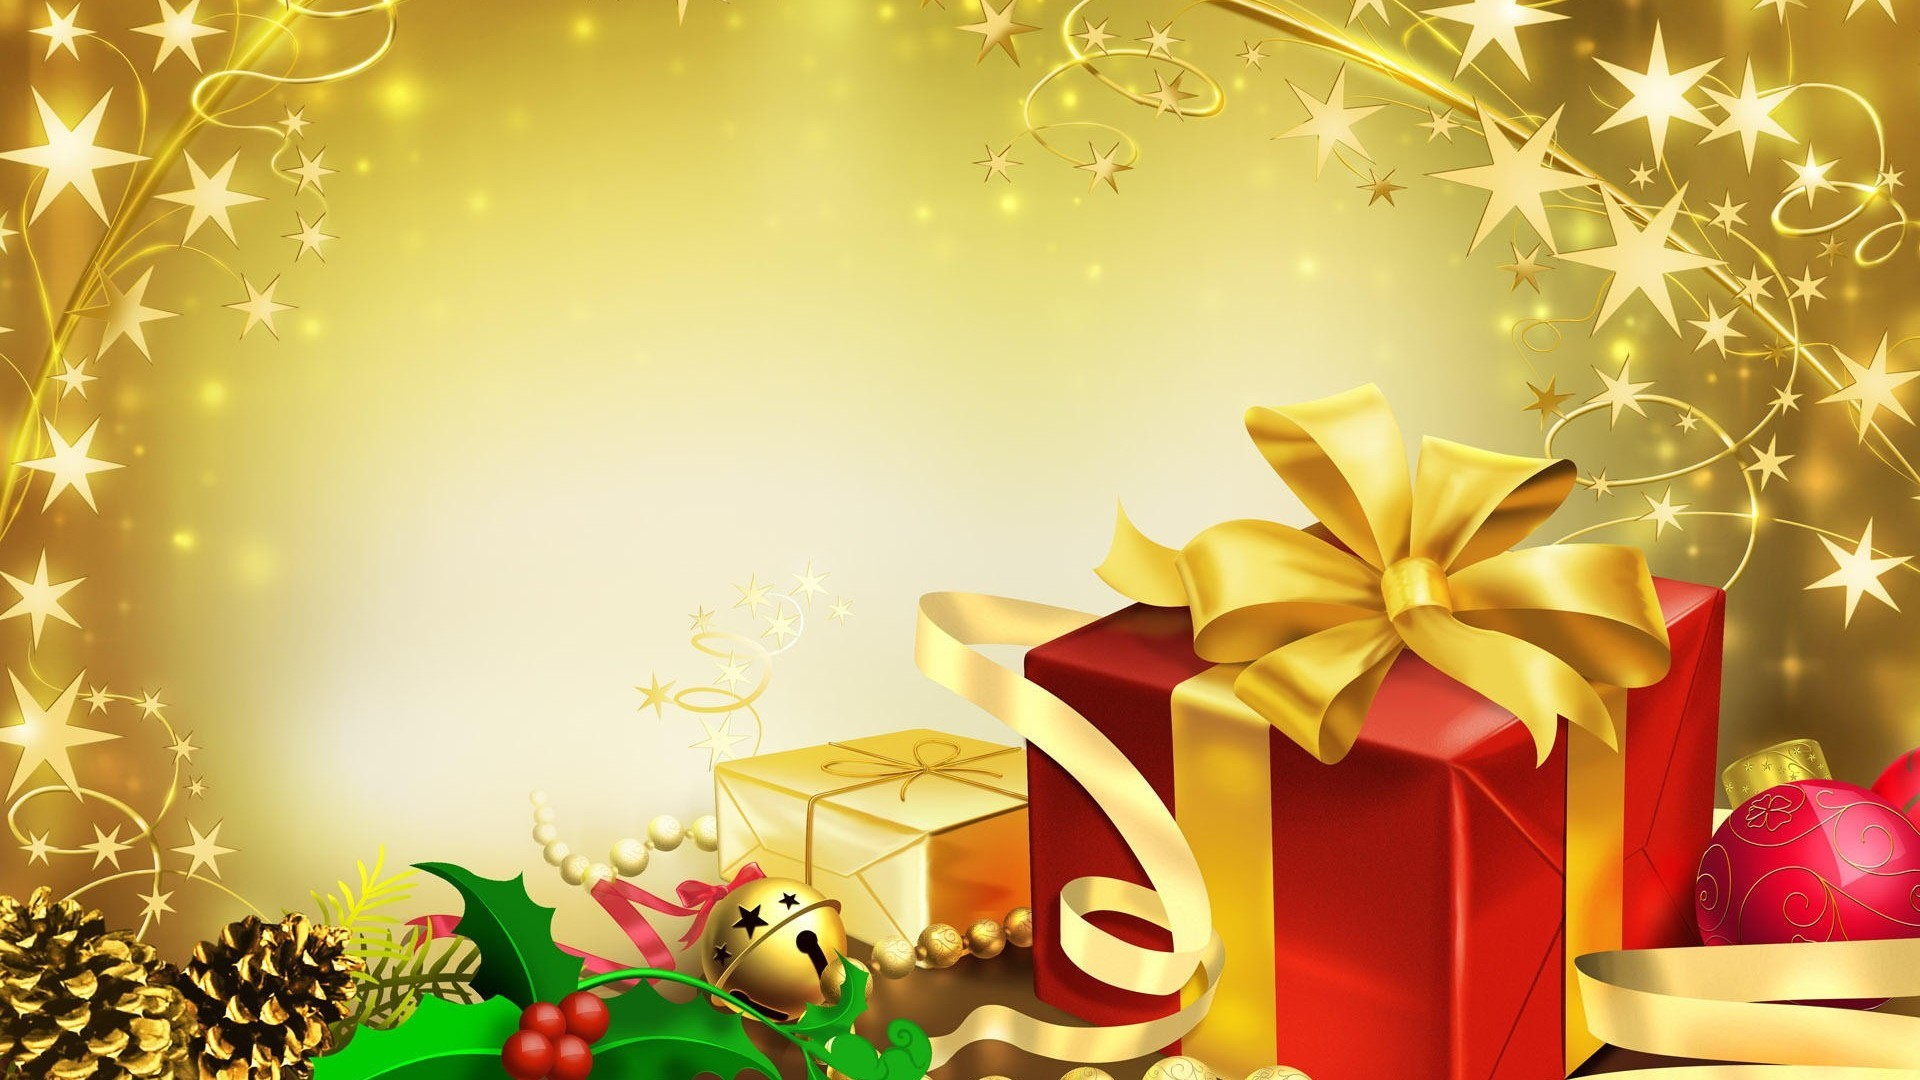 Christmas Gifts Wallpapers 67 Images